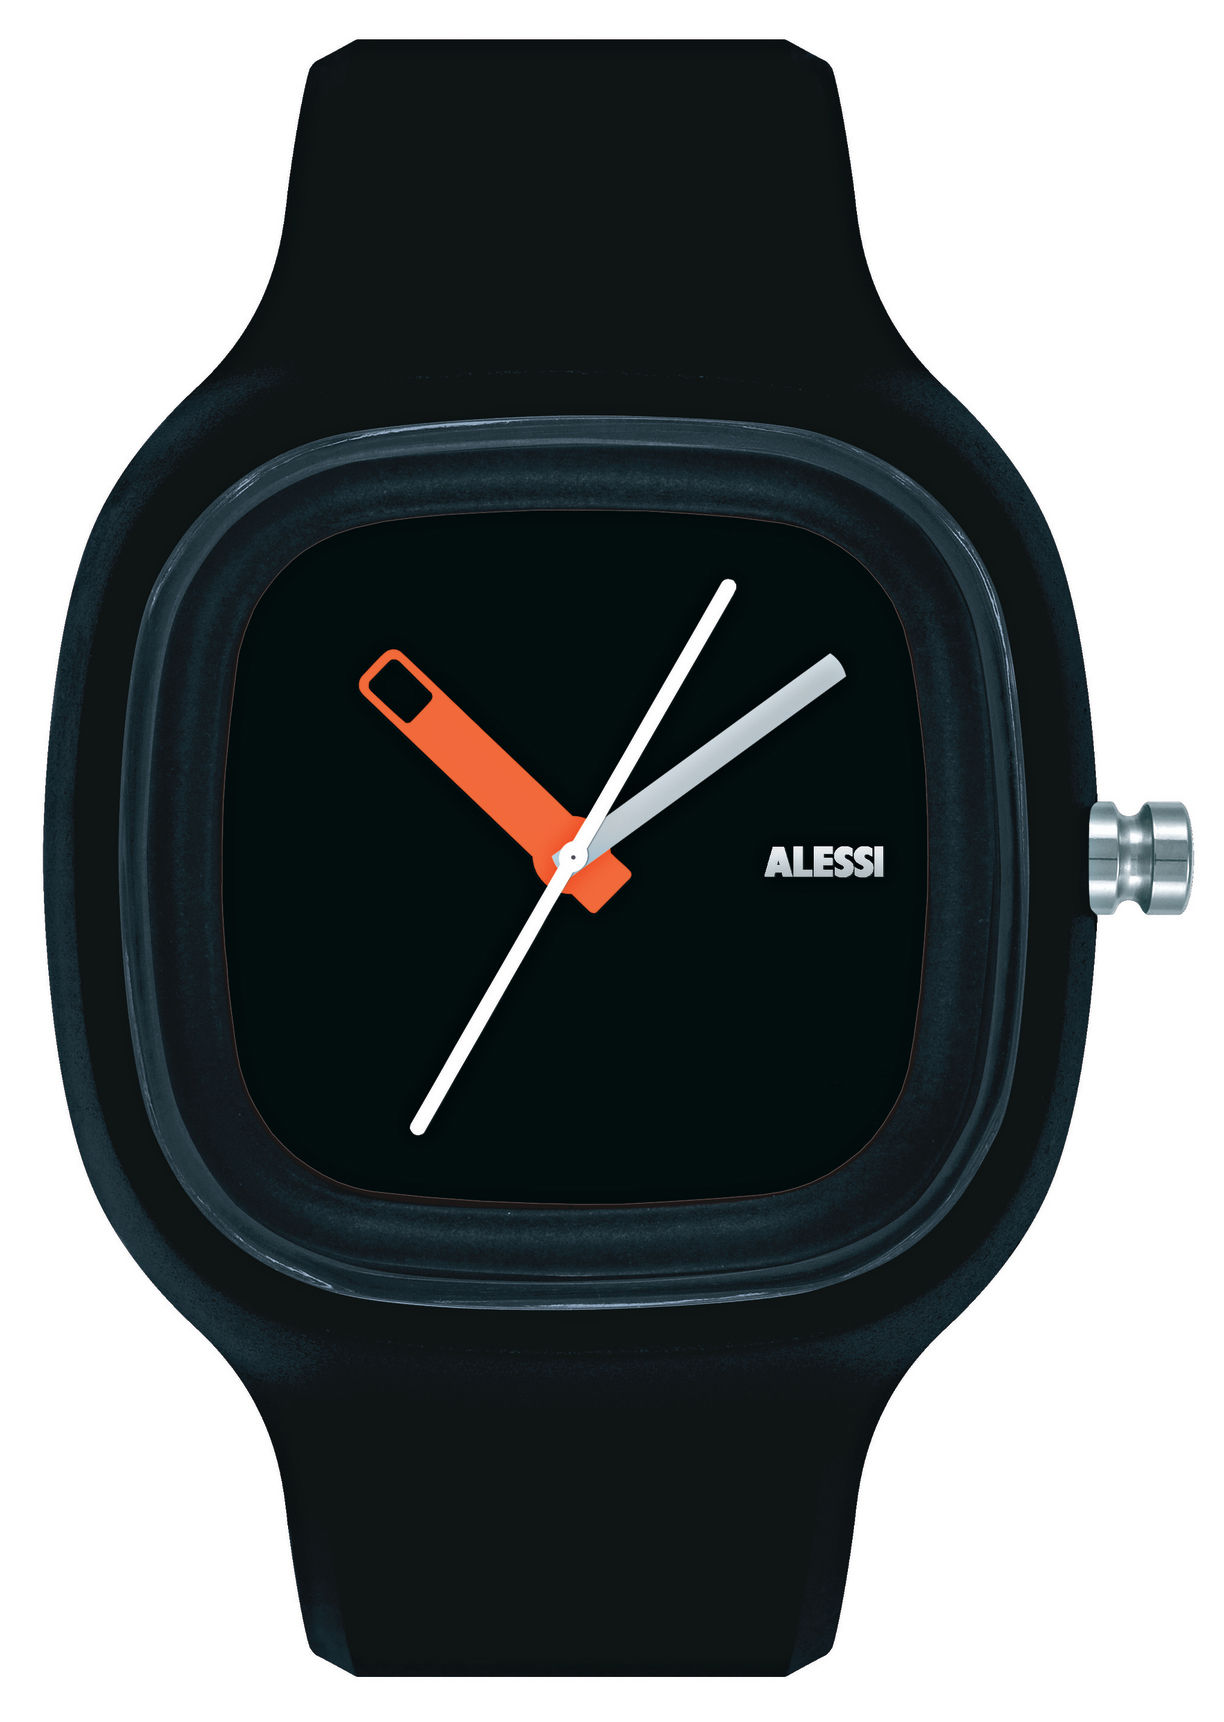 kaj watch  one colour version black by alessi watches - zoom